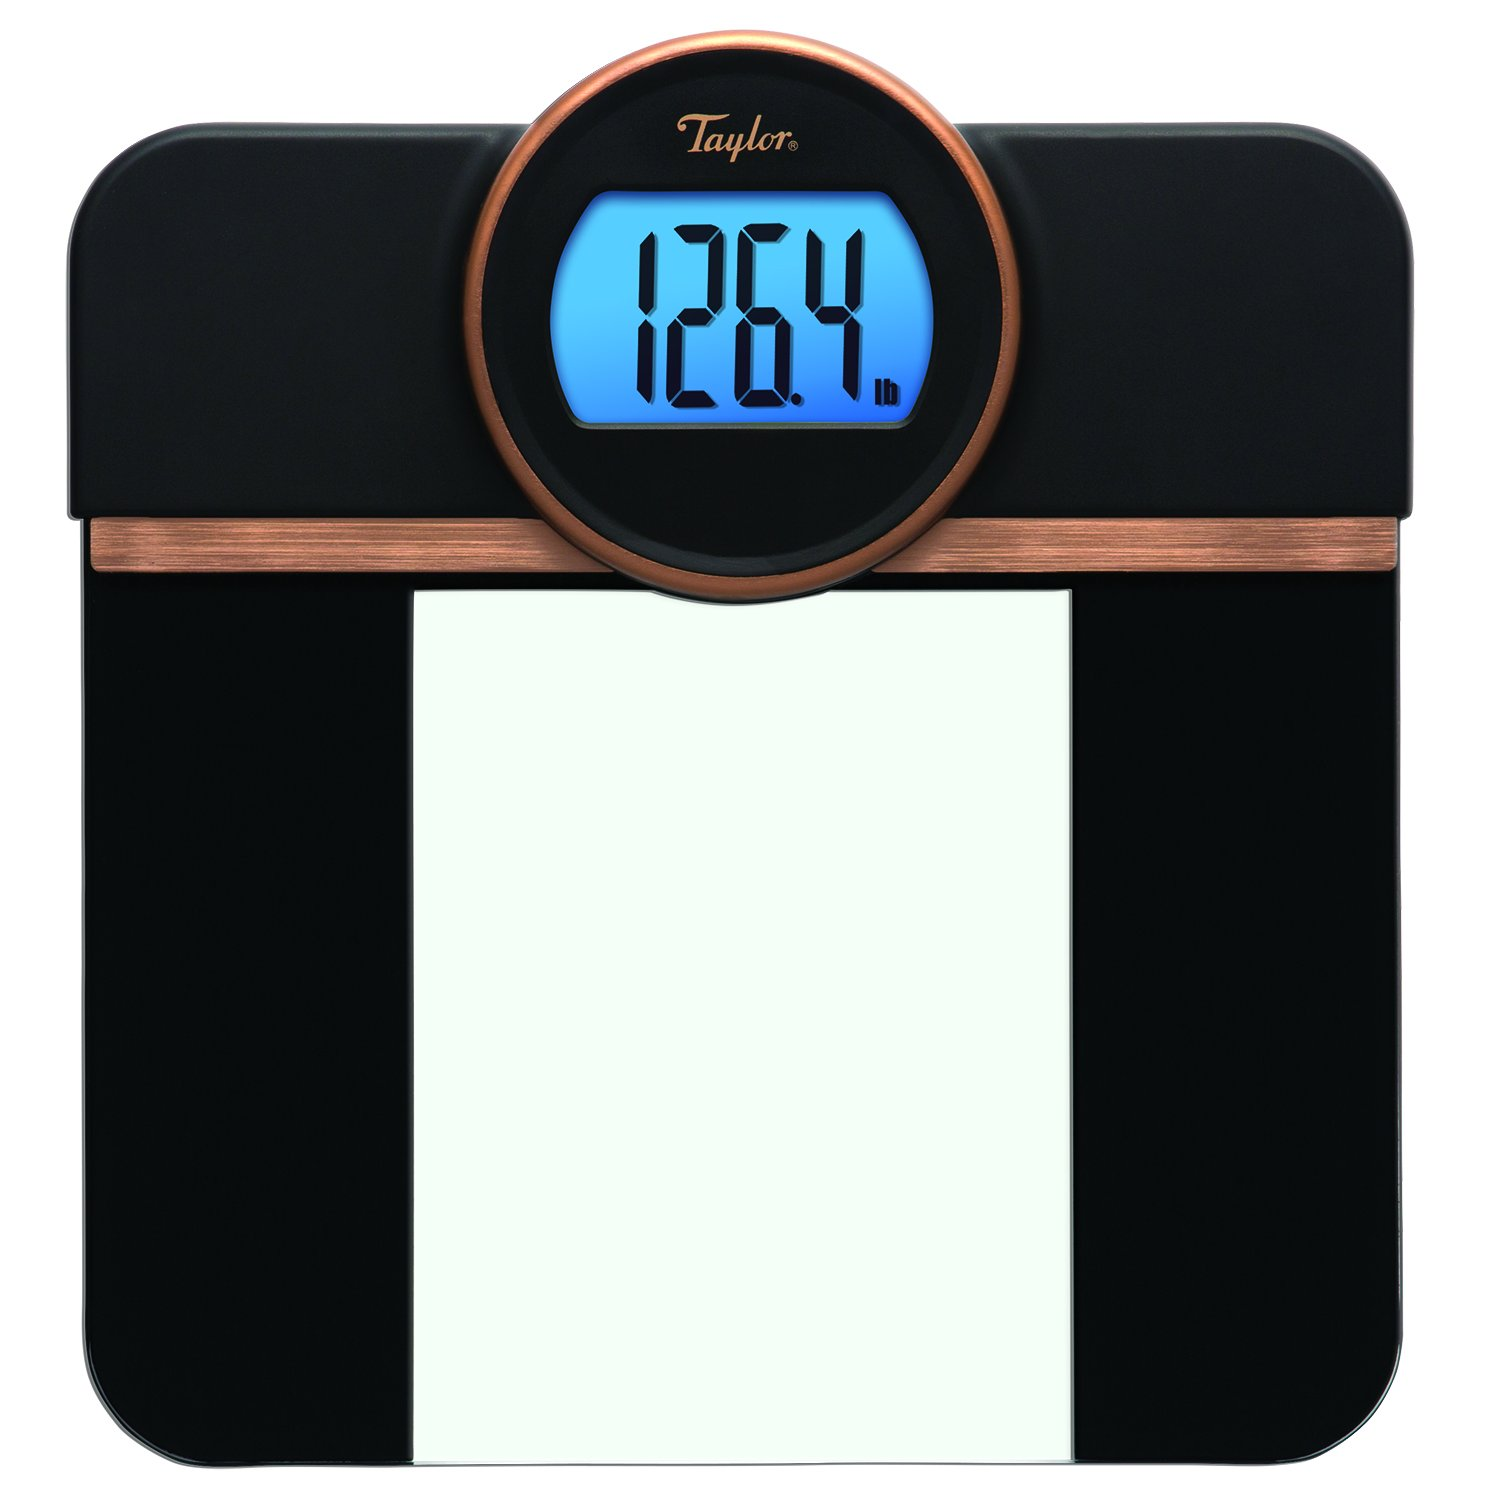 Taylor Precision Products 76004072 7600 Retro Scale with Raised Digital Readout, Black